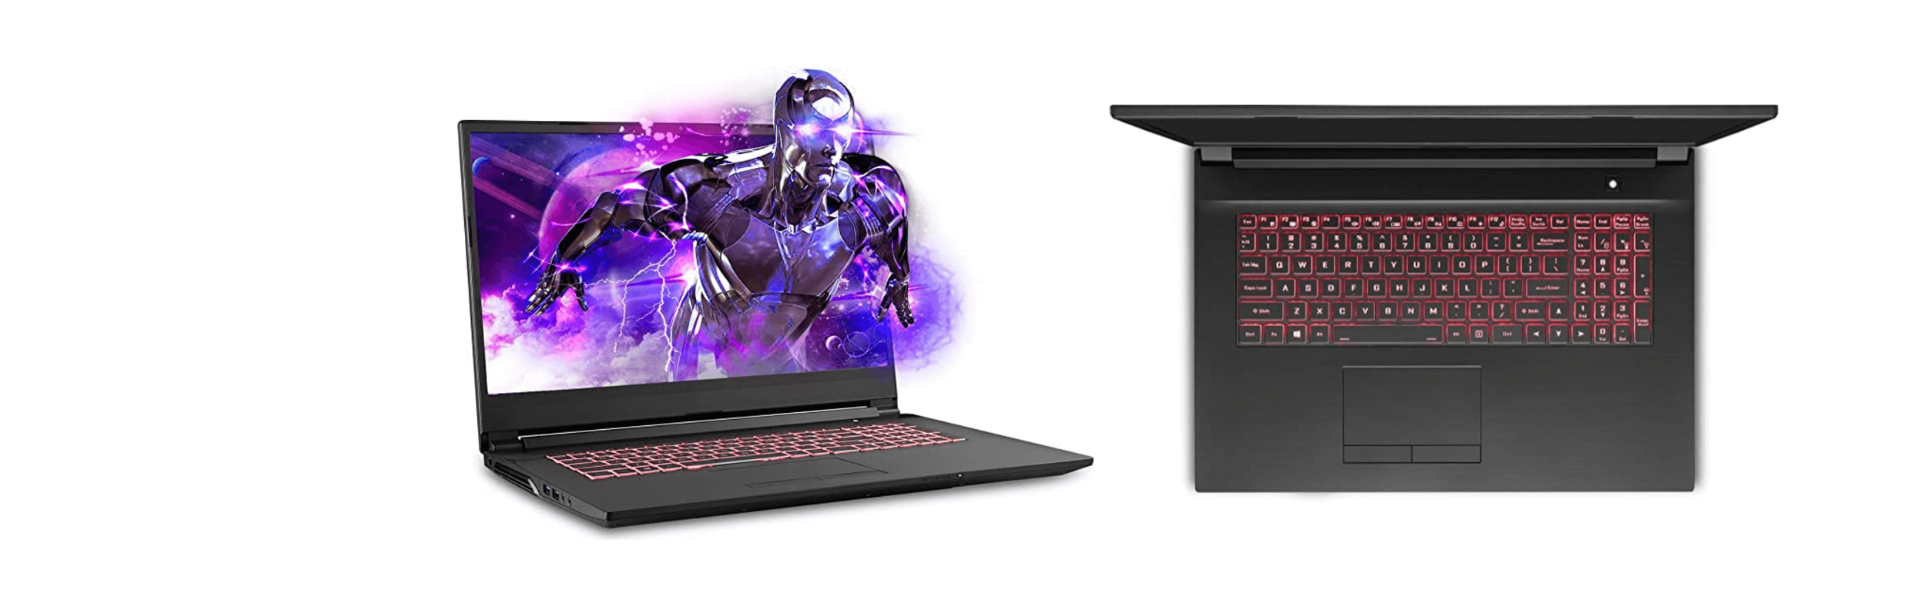 best Sager Gaming laptop review